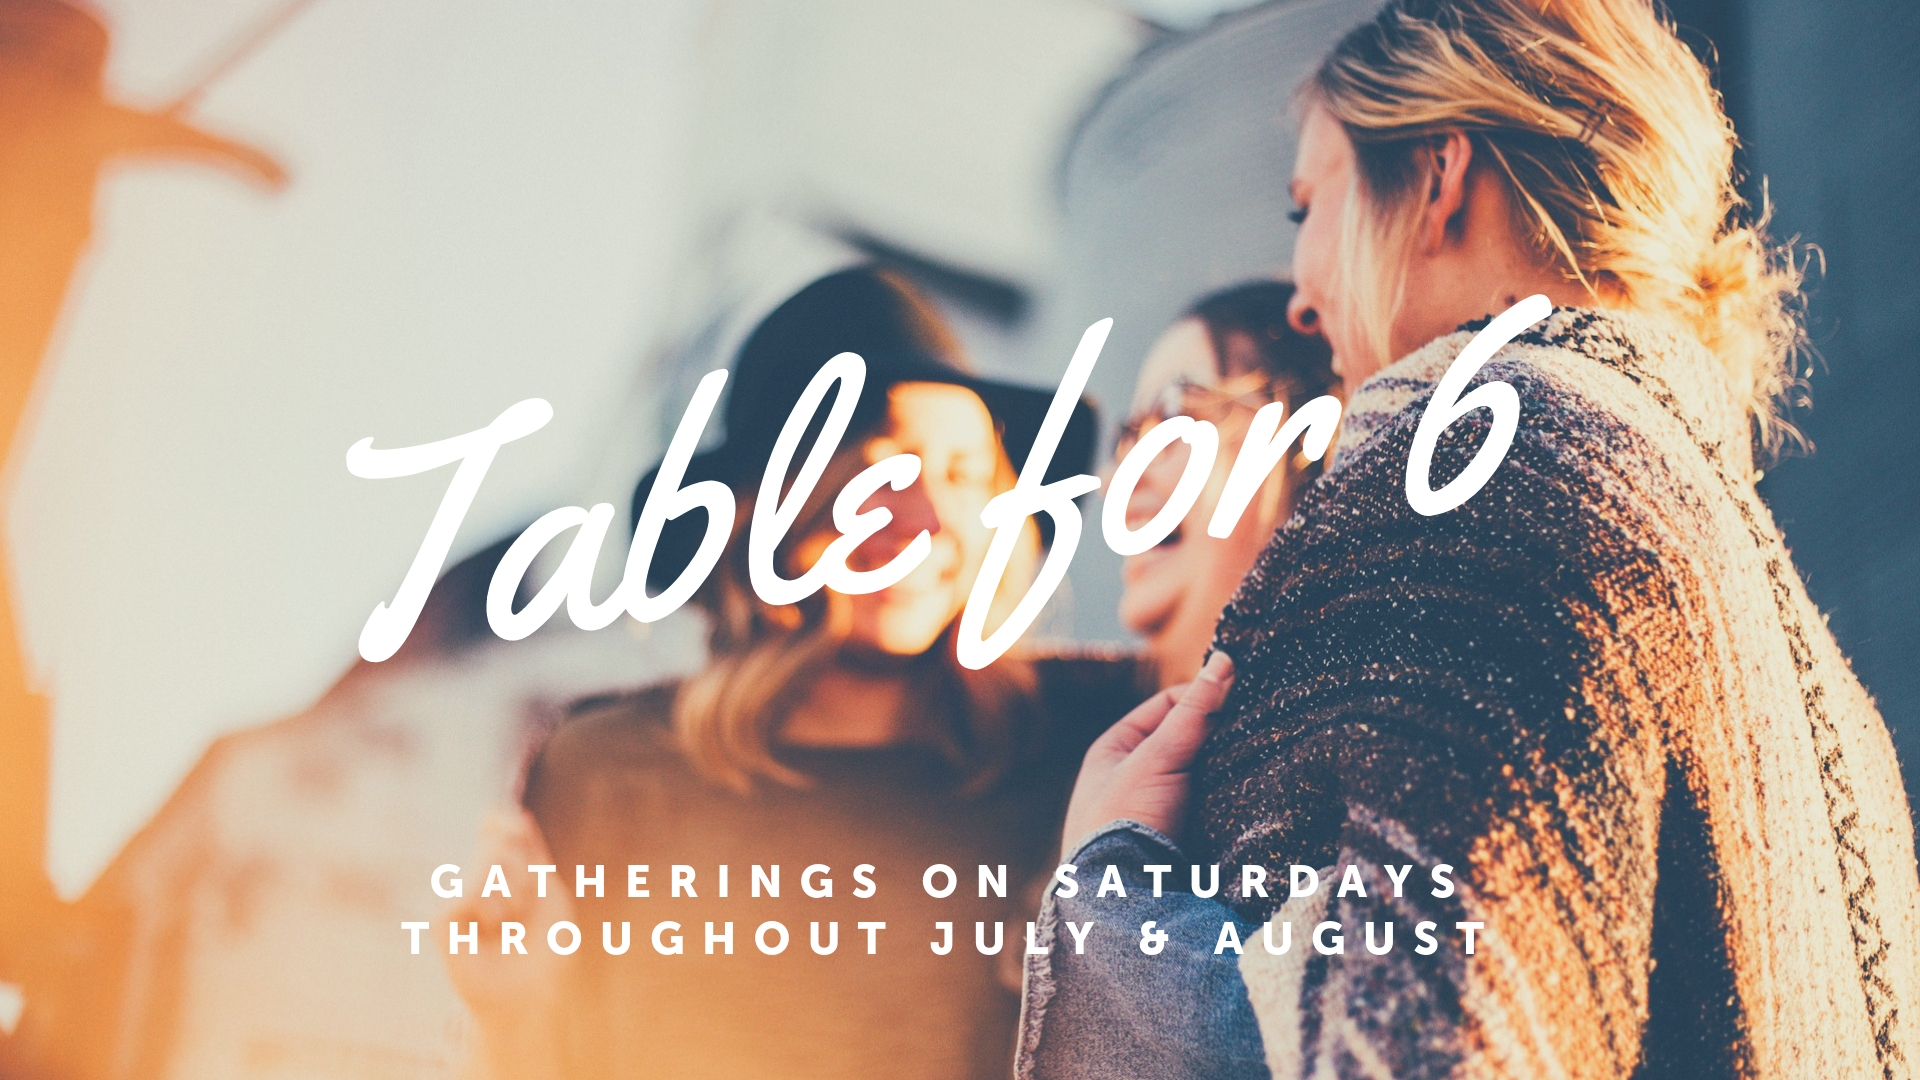 Table for 6 Sunday announcement (summer).jpg